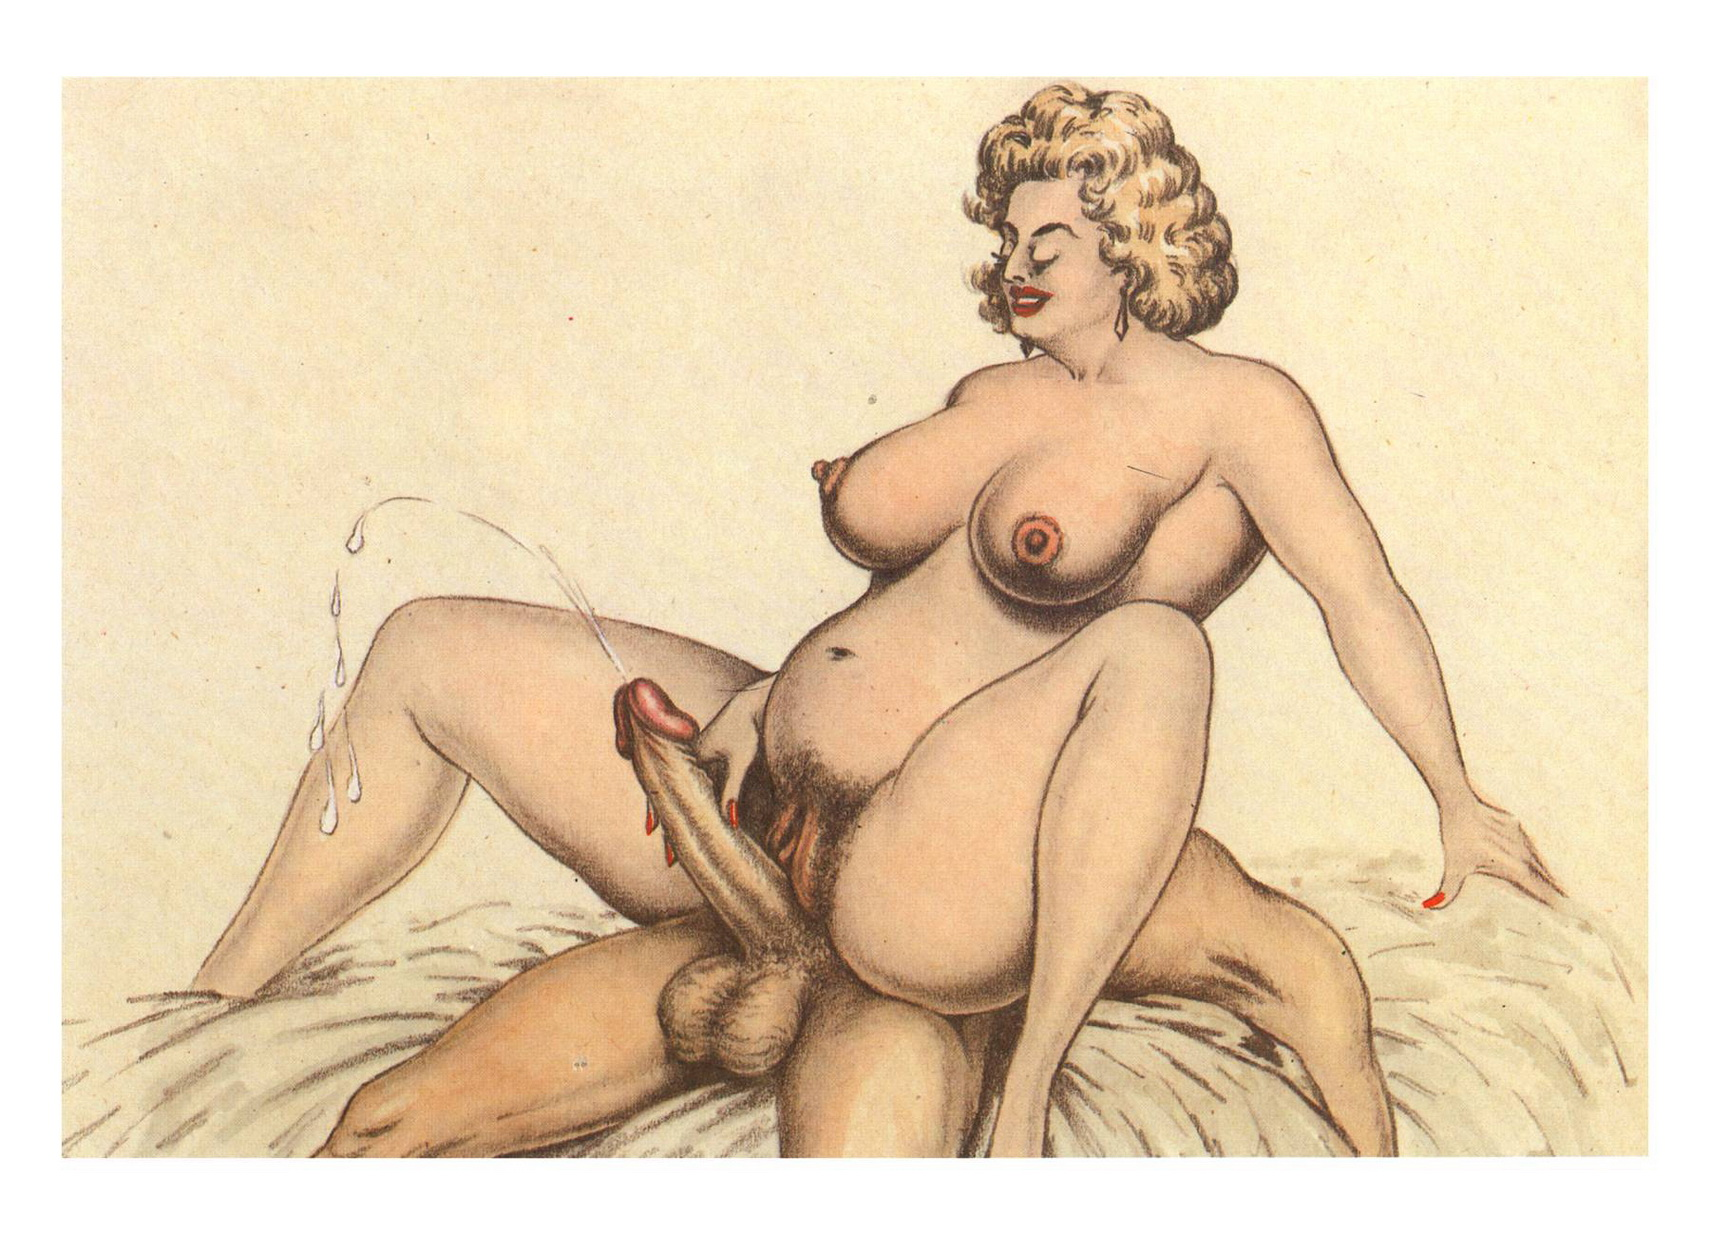 art of pornographic pictures